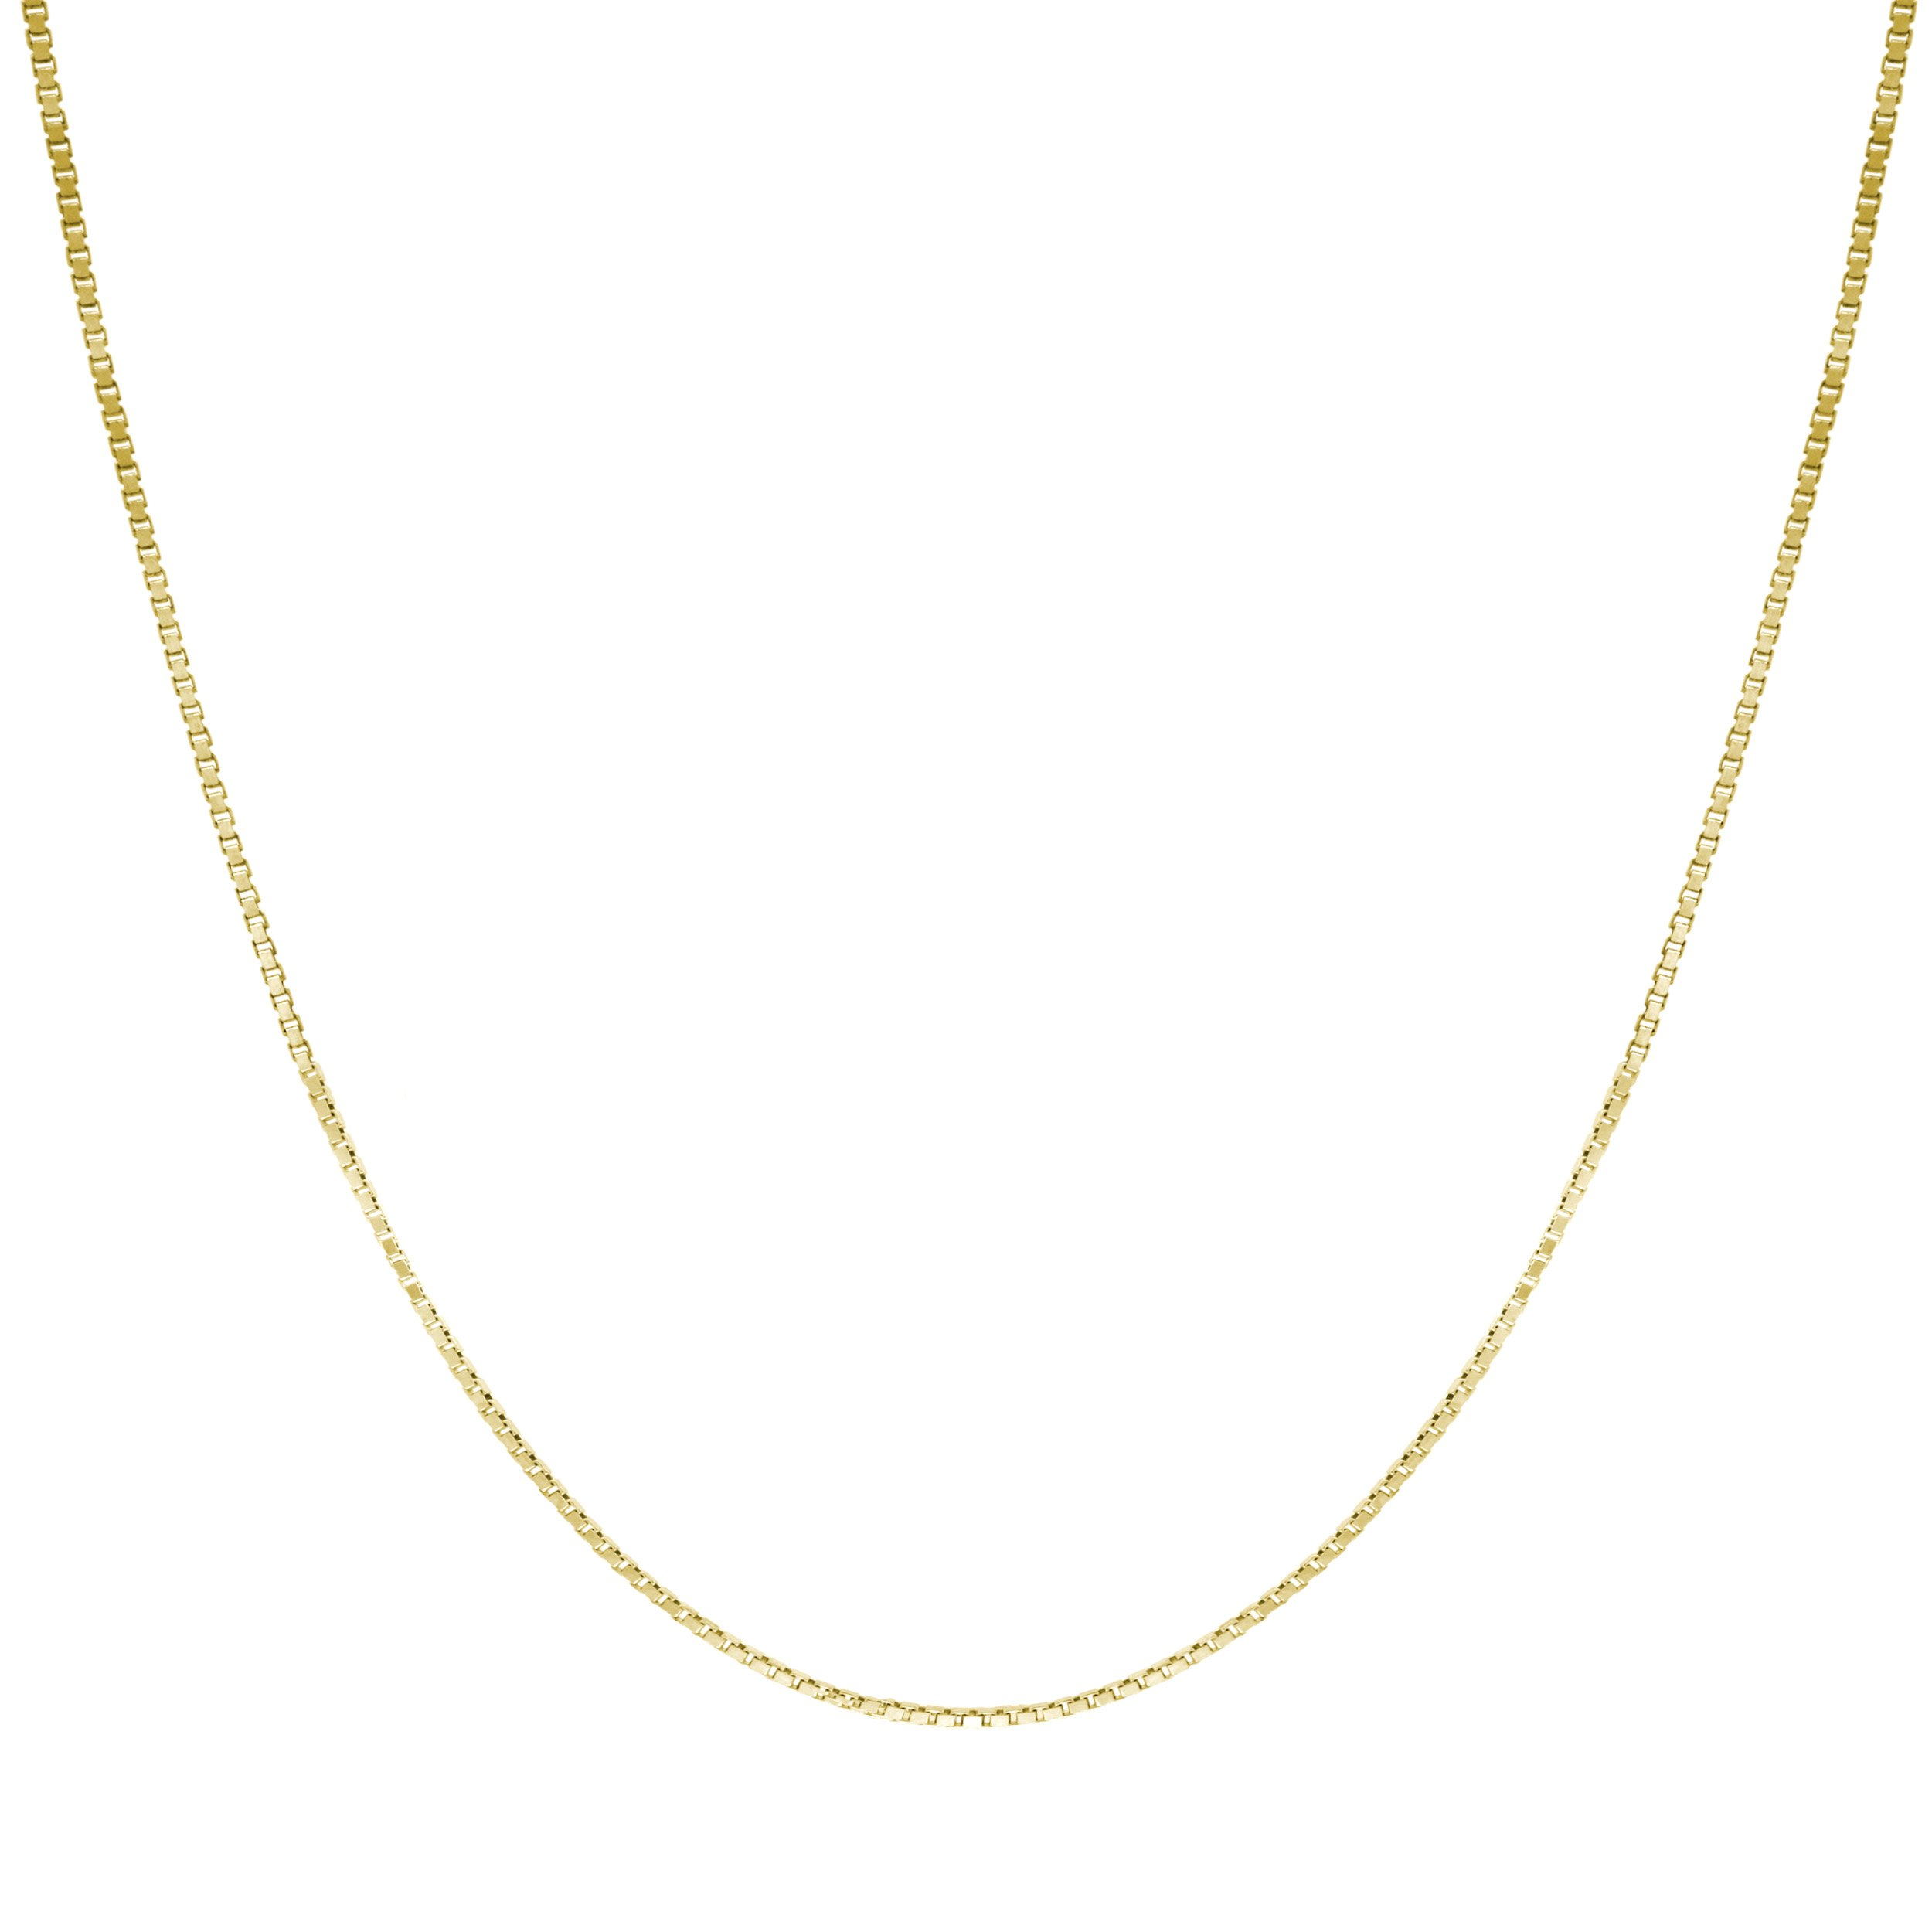 Honolulu Jewelry Company 14K Solid Yellow Gold 0.7mm Box Chain Necklace (20 Inches)